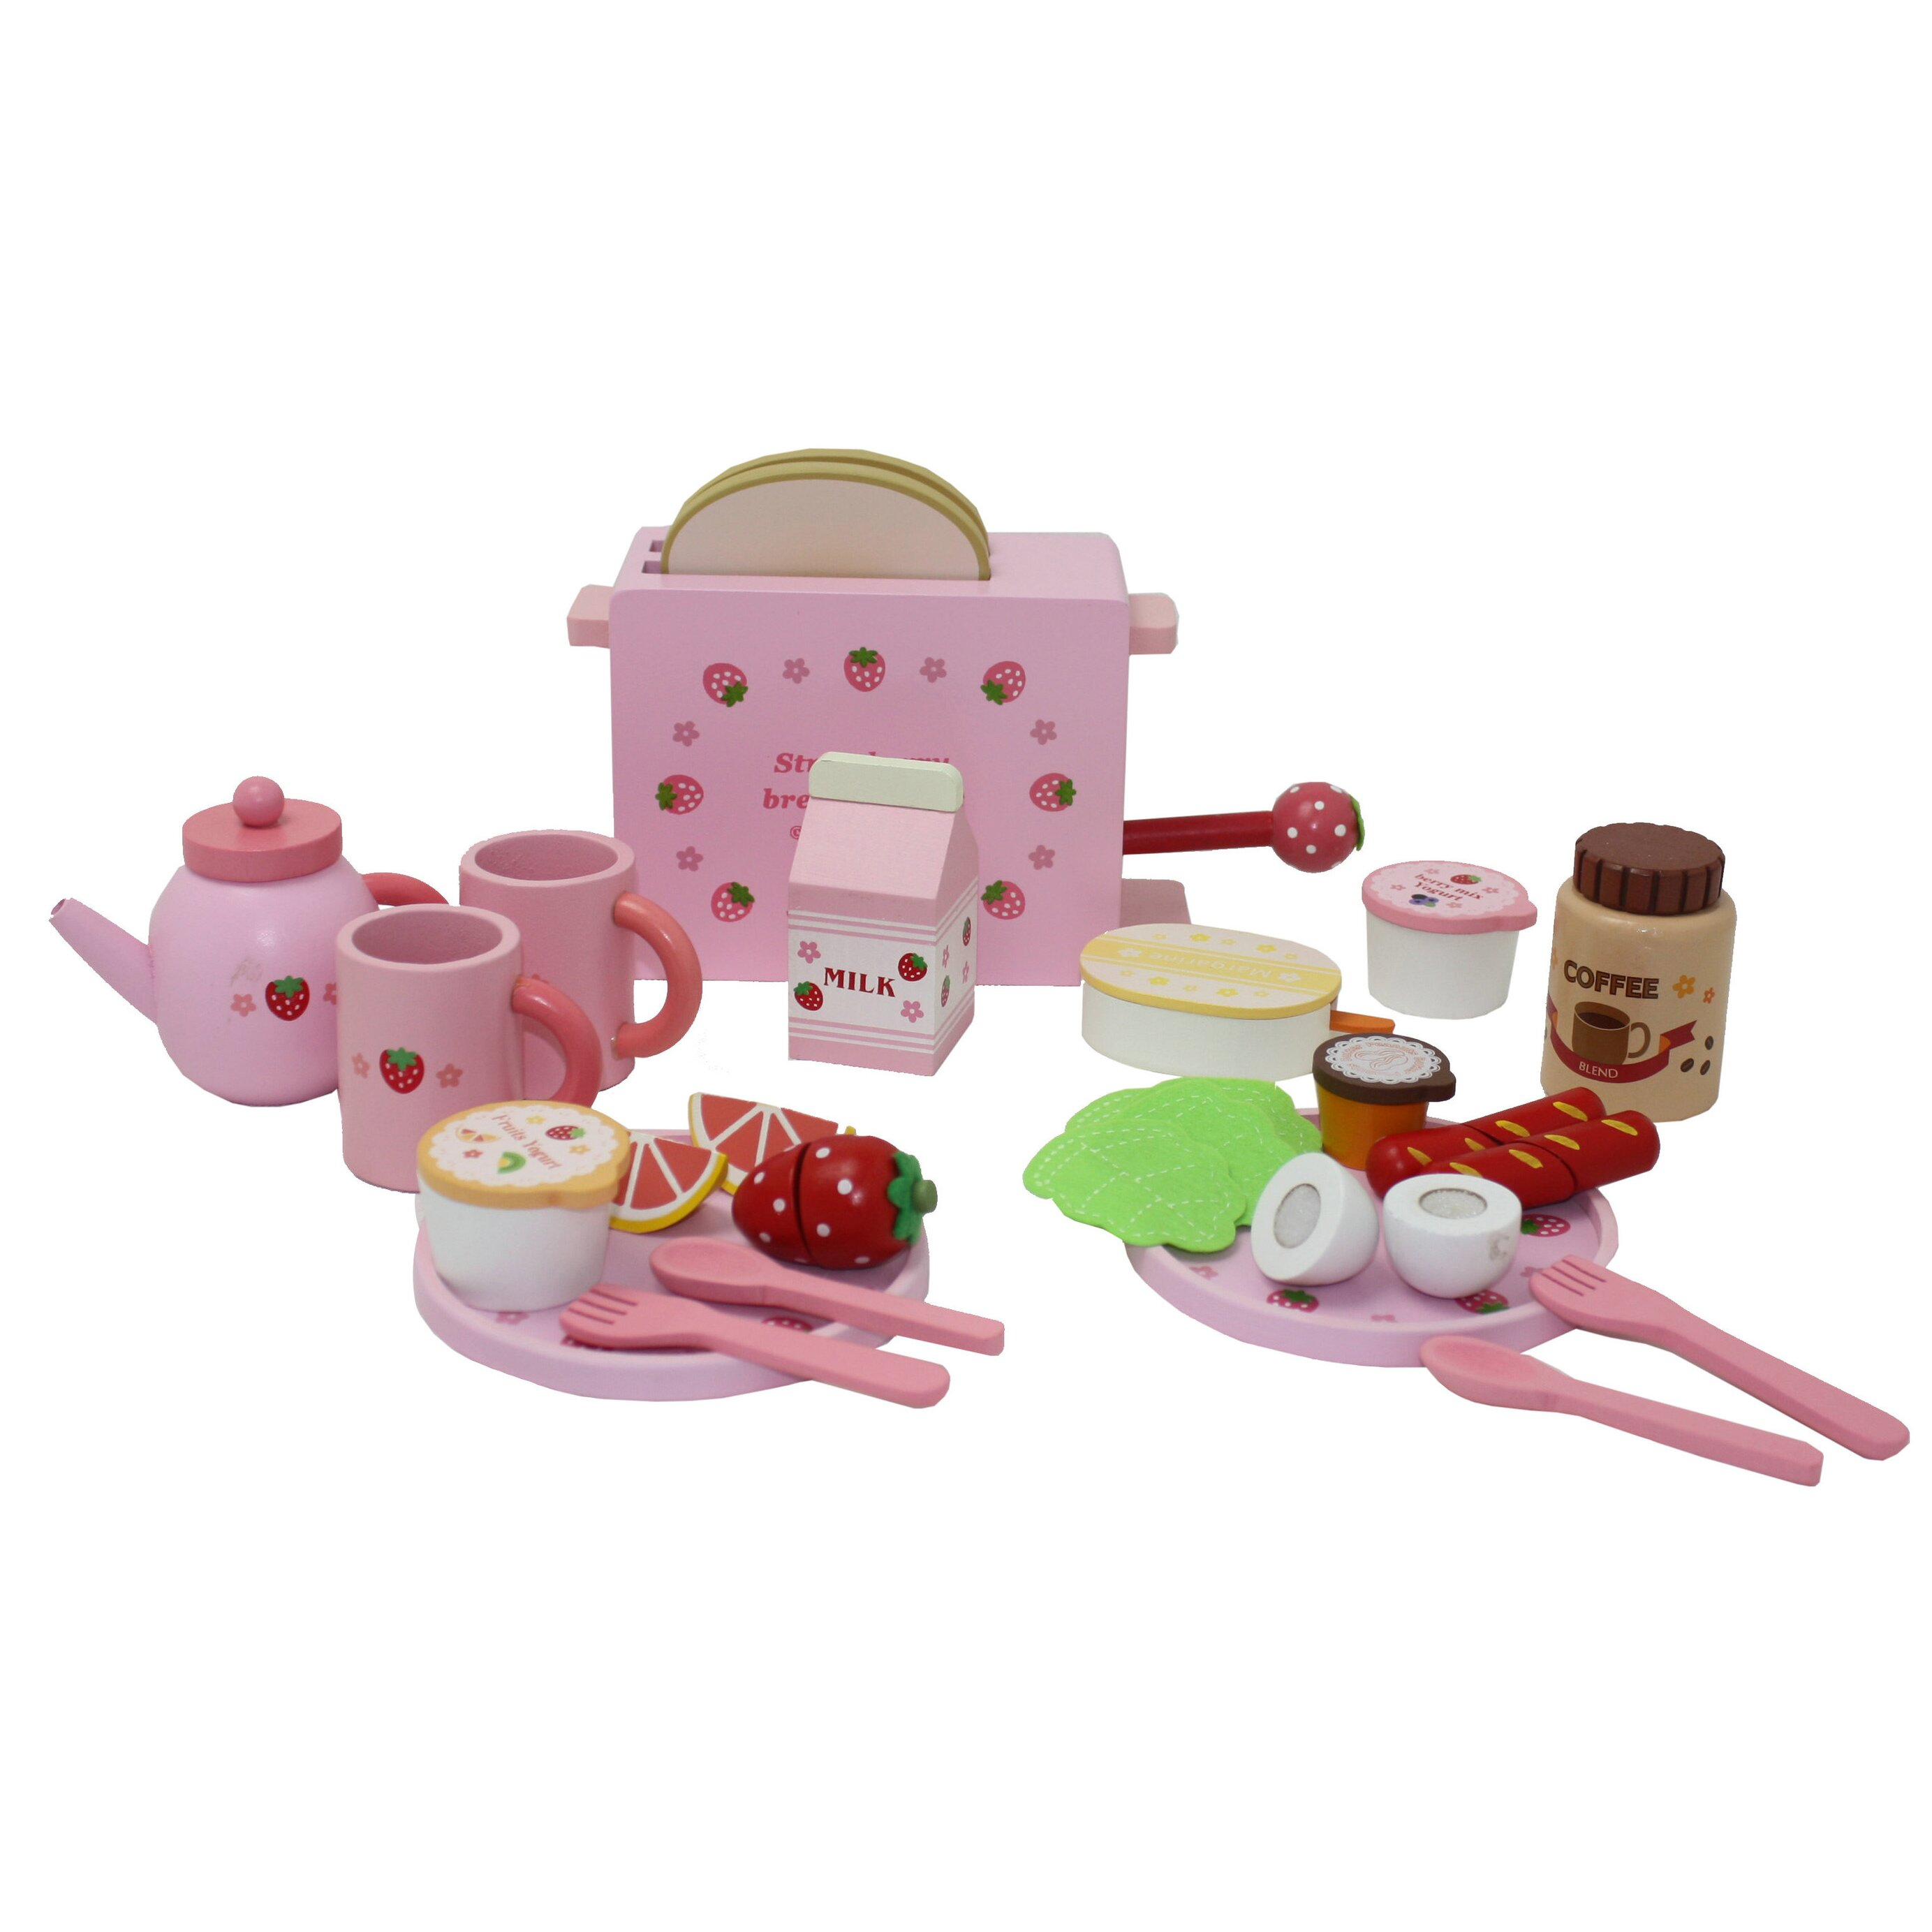 Play Food Set Toys : Berry toys piece complete healthy breakfast wooden play